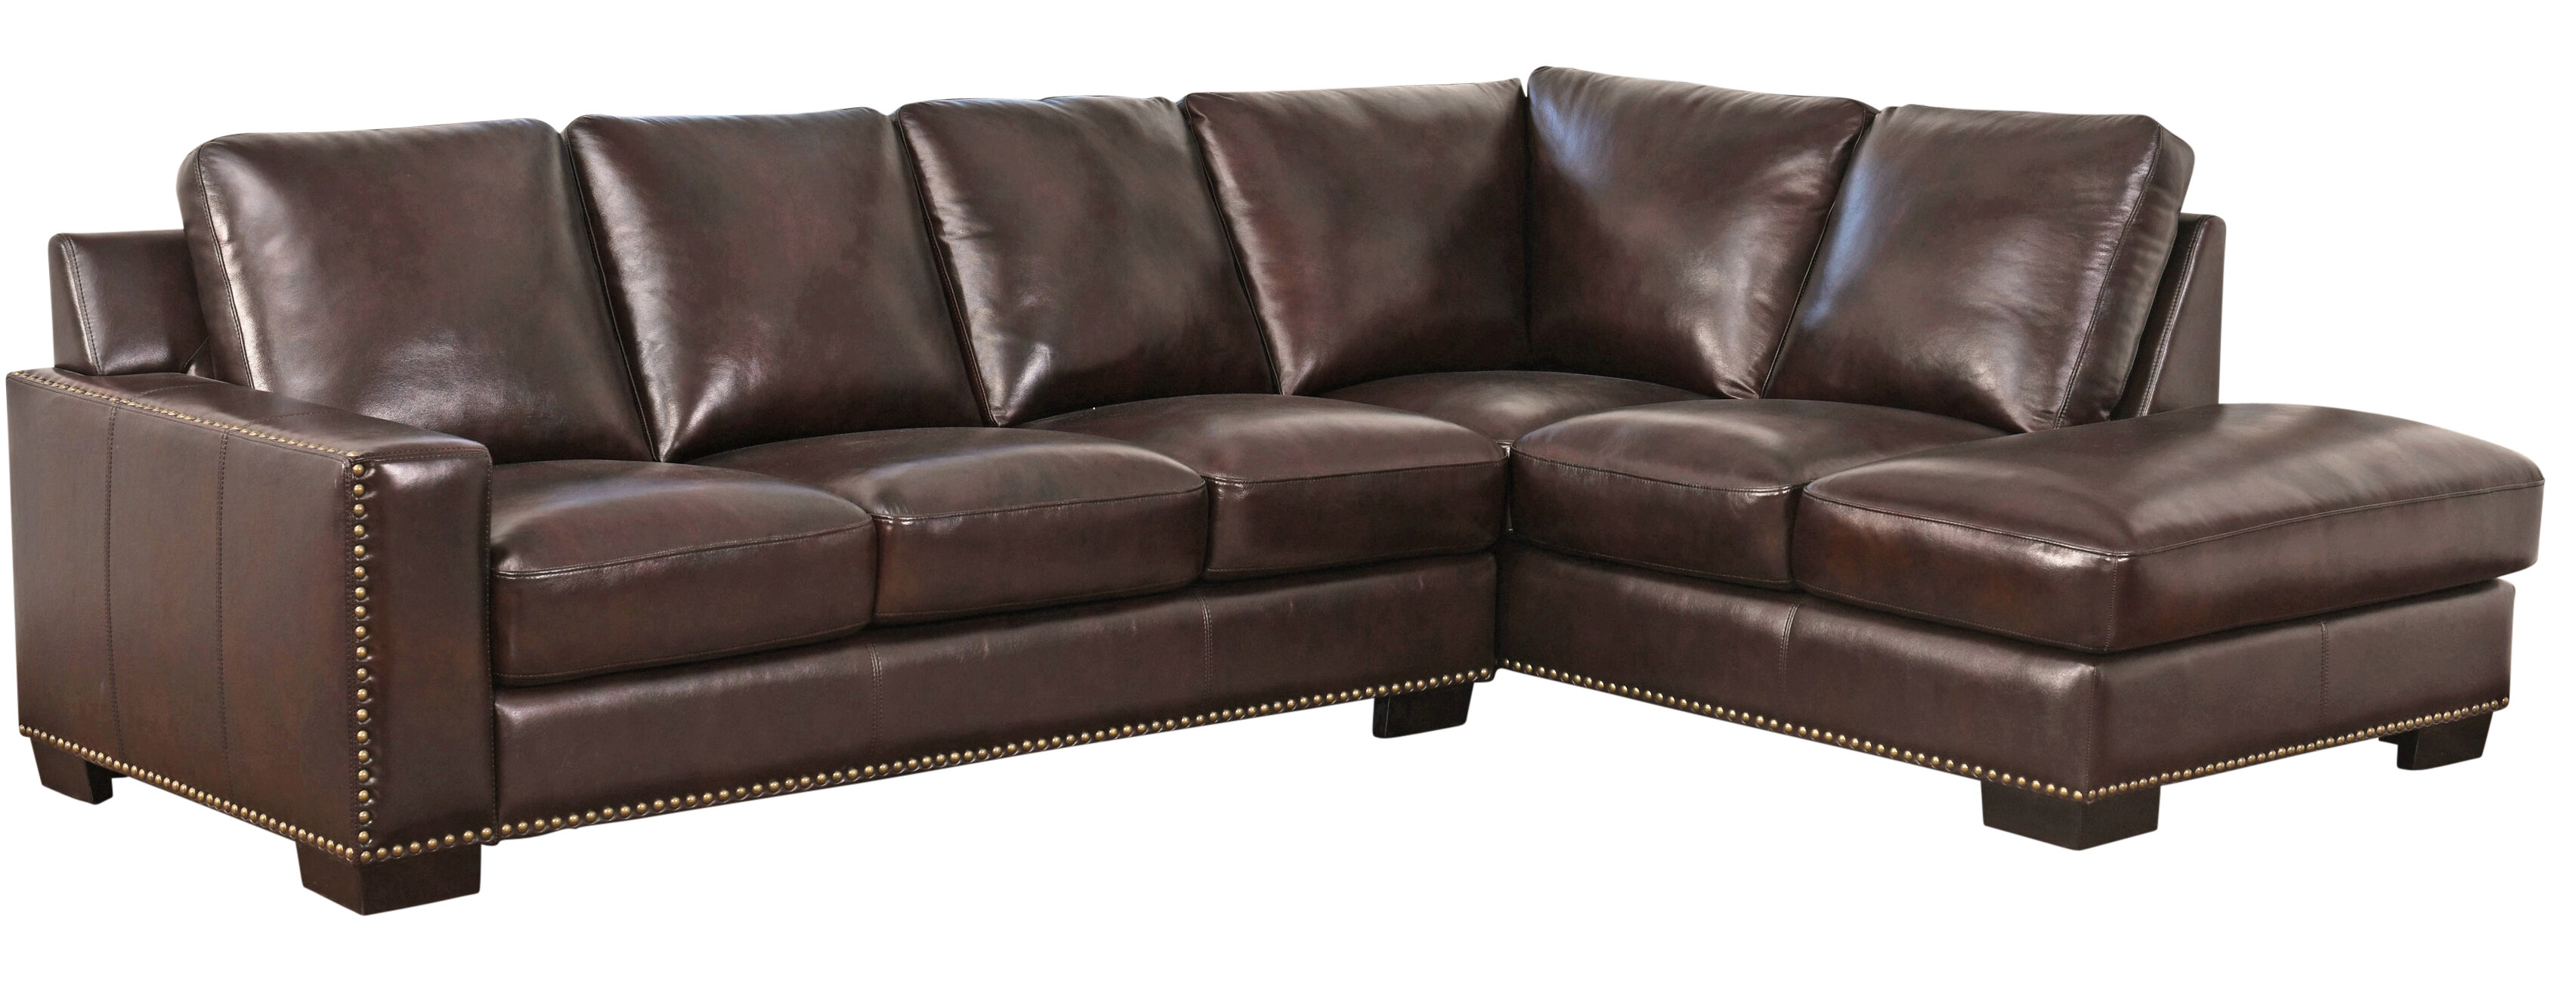 sofa inspiration leather genuine i couches in co with pcok modern good chaise sectional